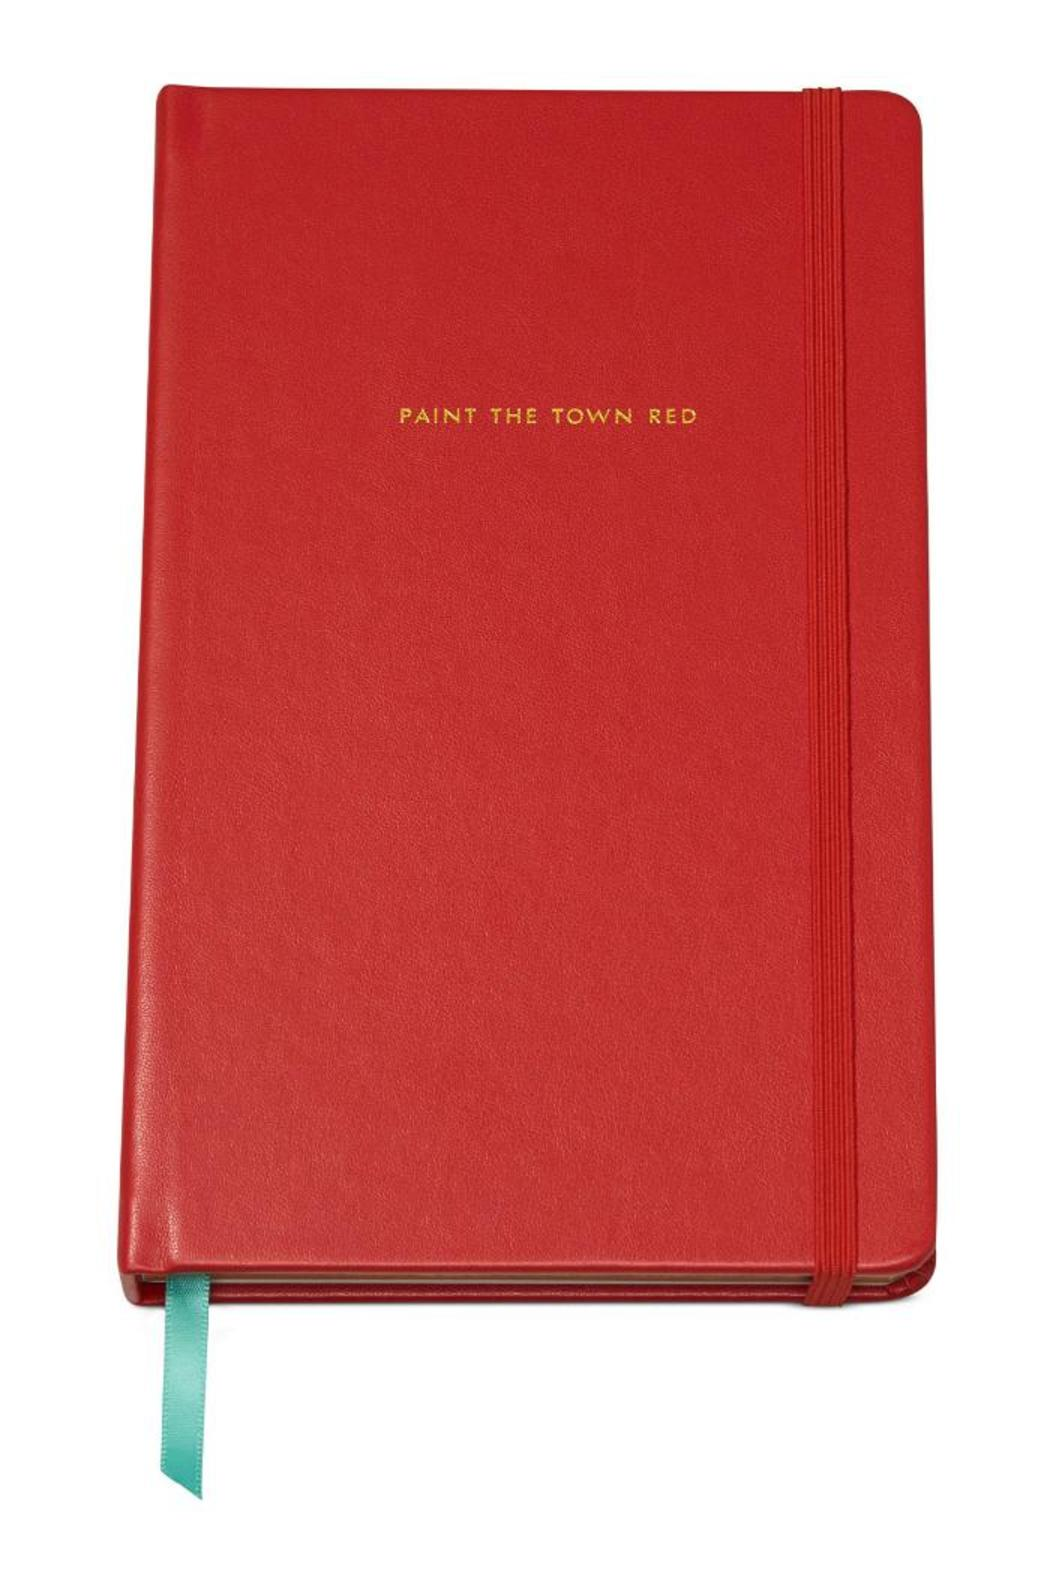 Kate Spade Paint The Town Red Notebook | Emergency Gifts to Have on Hand This Holiday Season